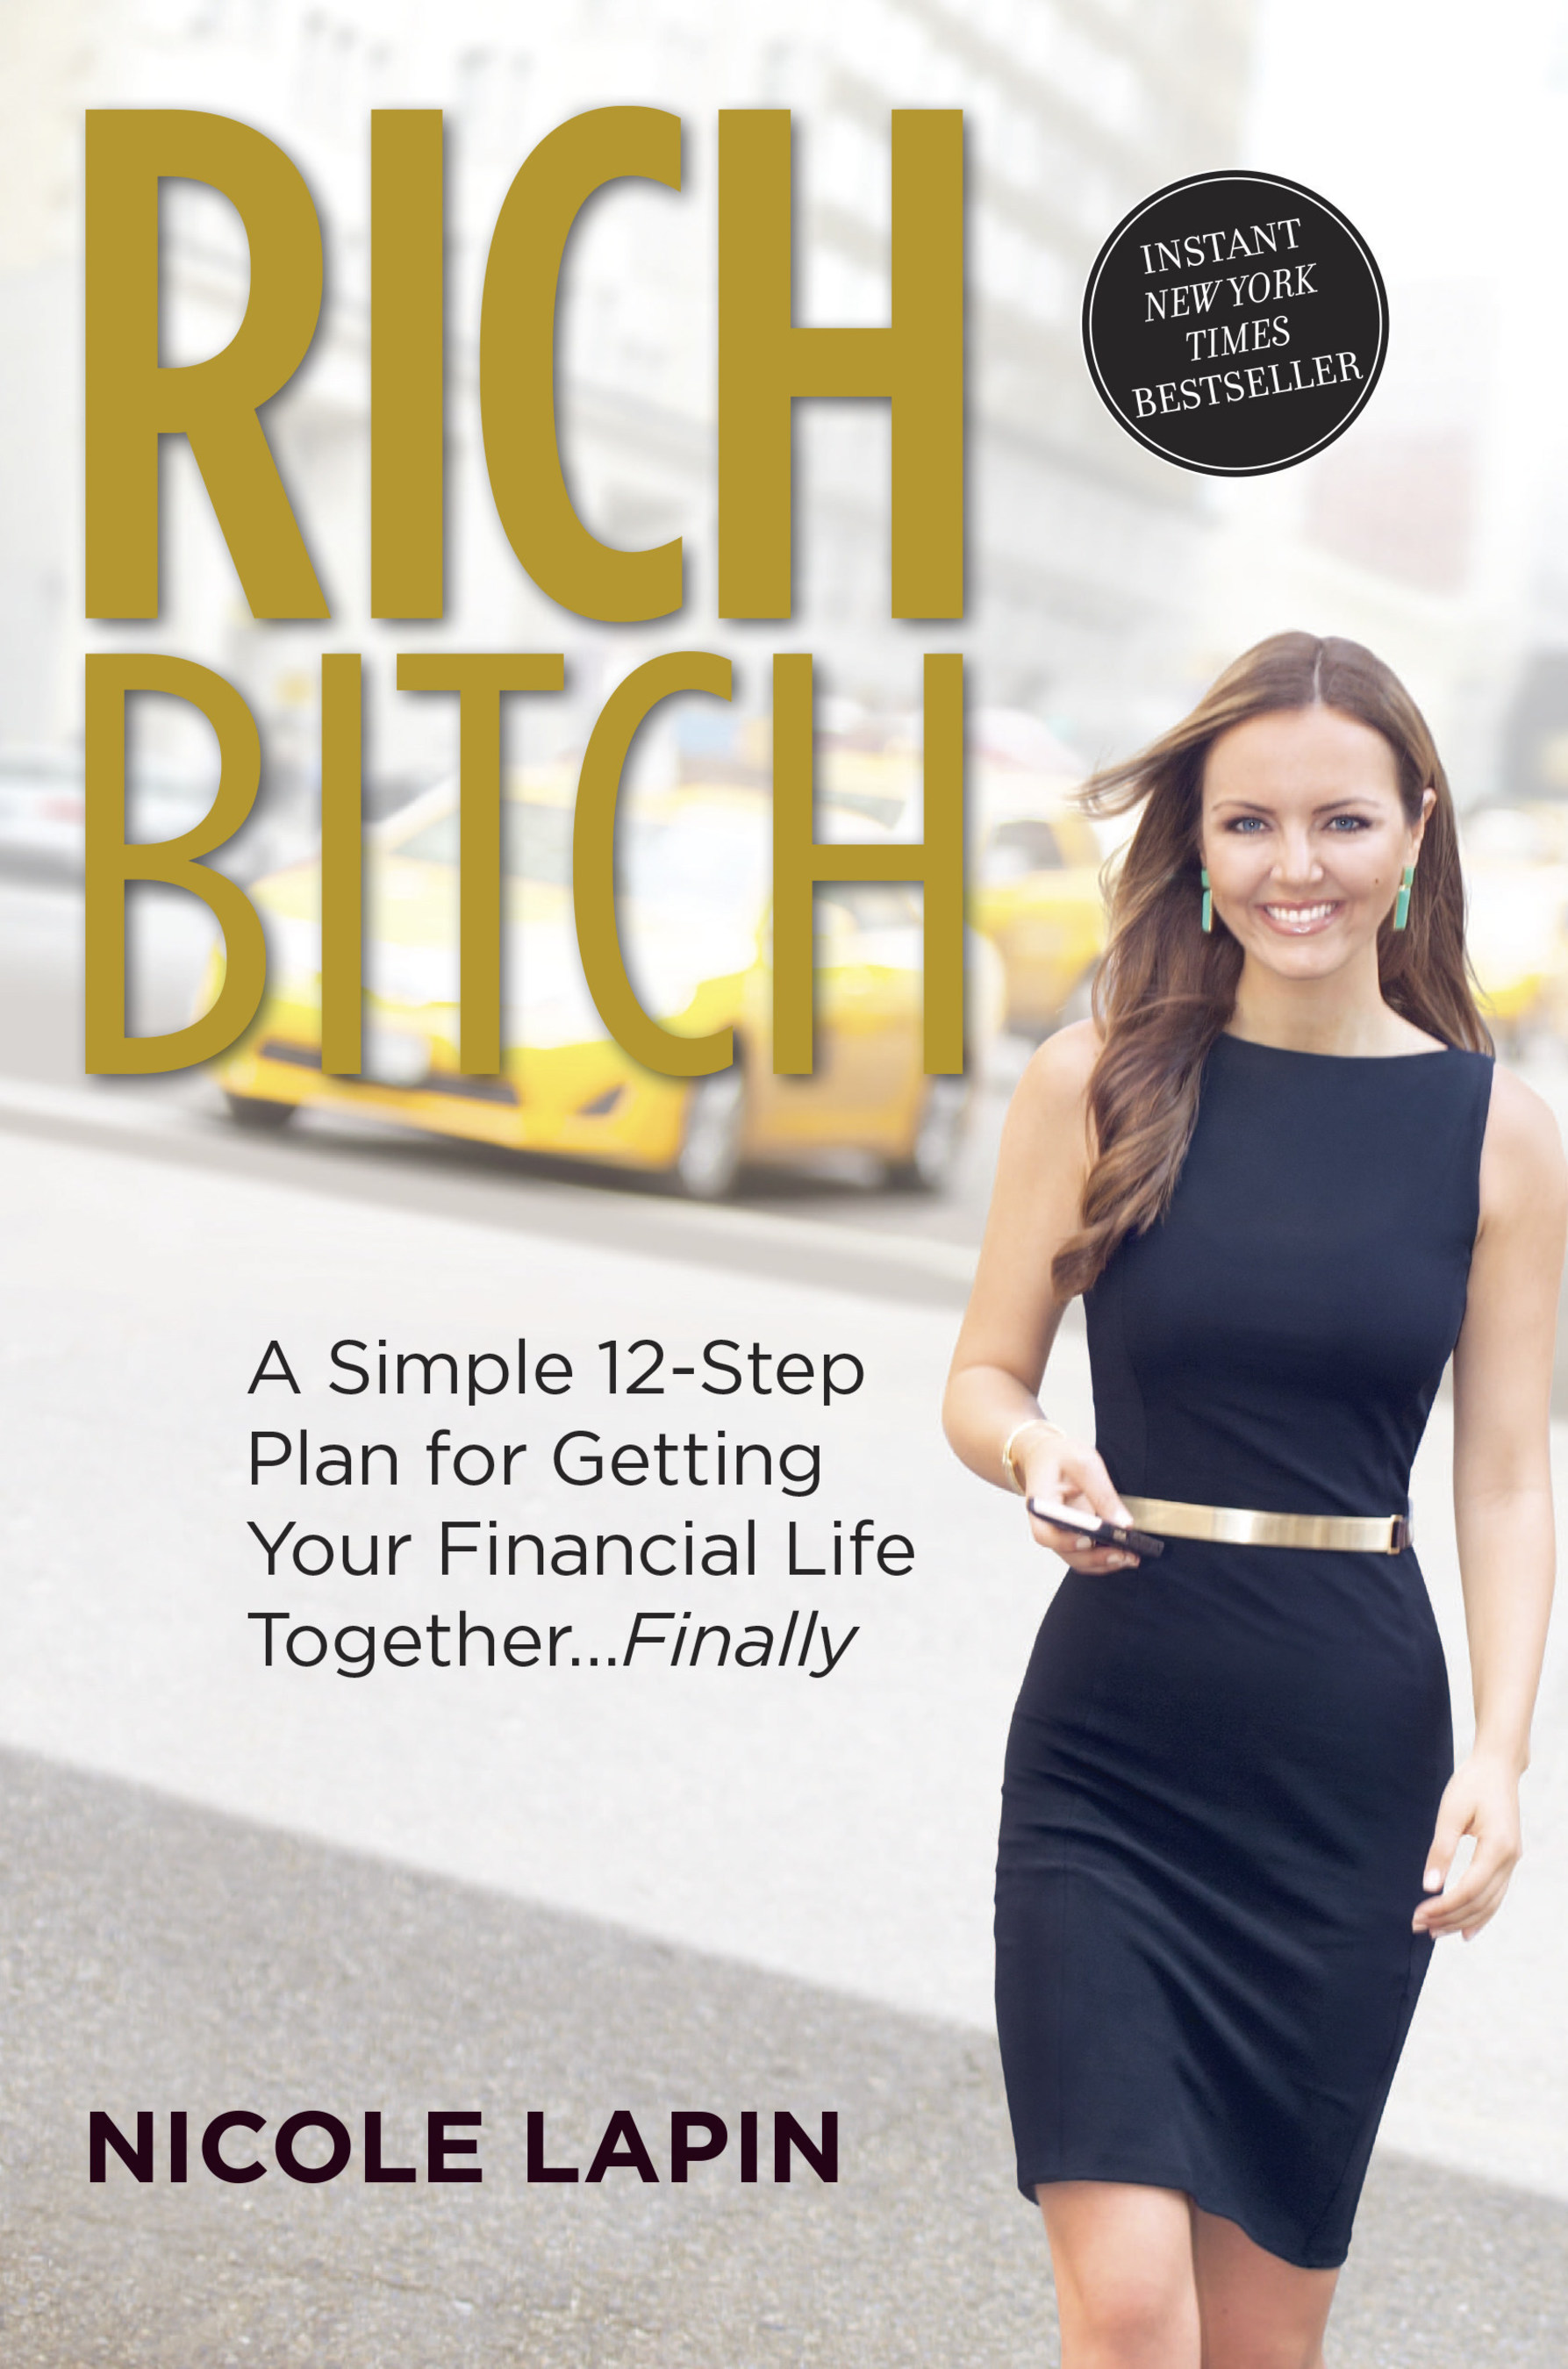 """""""Rich Bitch: A Simple 12-Step Plan for Getting Your Financial Life Together... Finally"""" by Nicole Lapin is now an instant New York Times bestseller."""